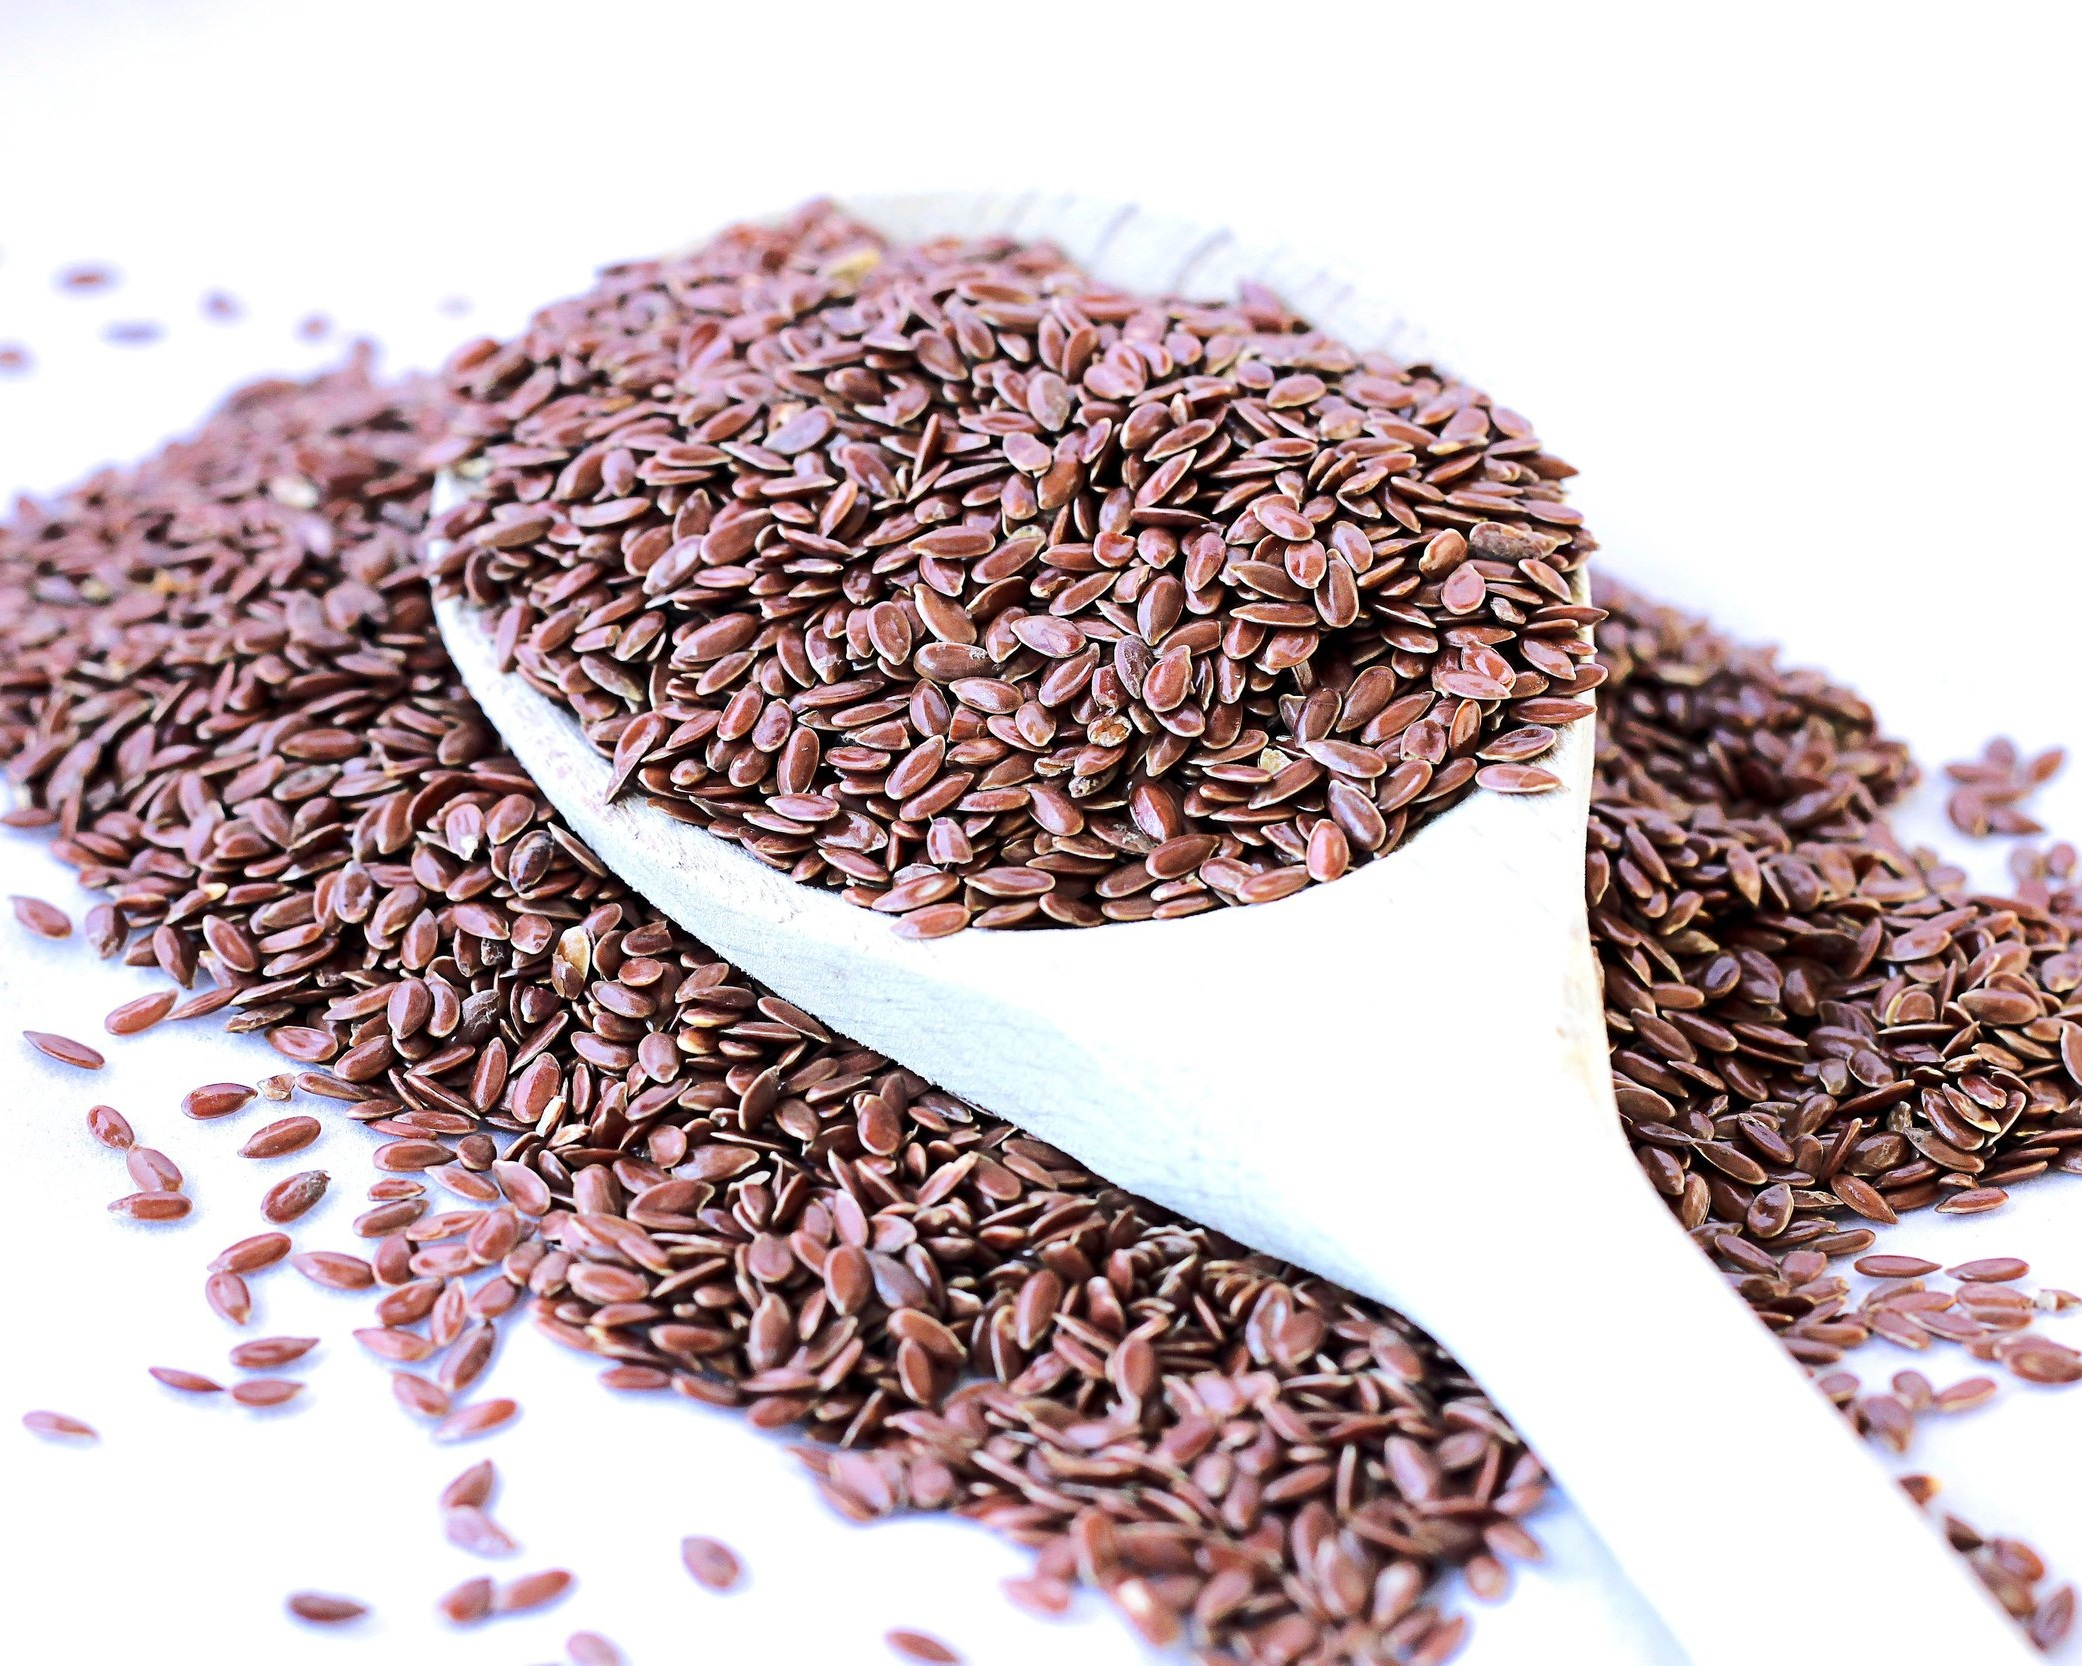 spoon-scoops-flax-seeds+%281%29.jpg